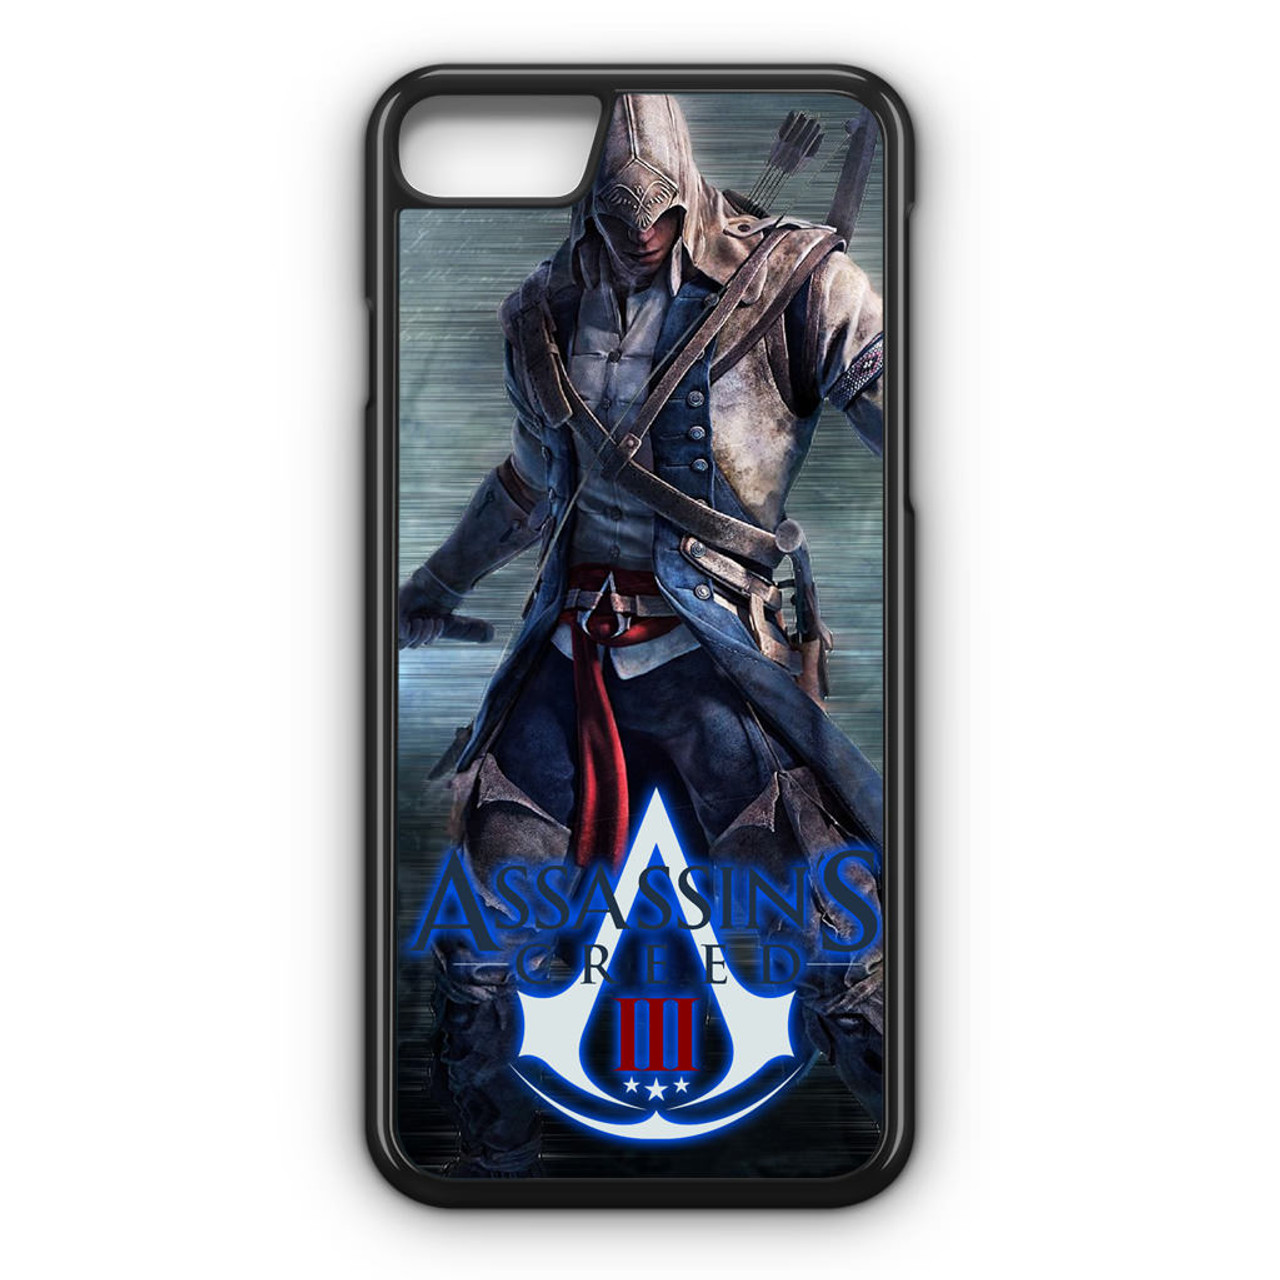 iphone 8 case assassins creed